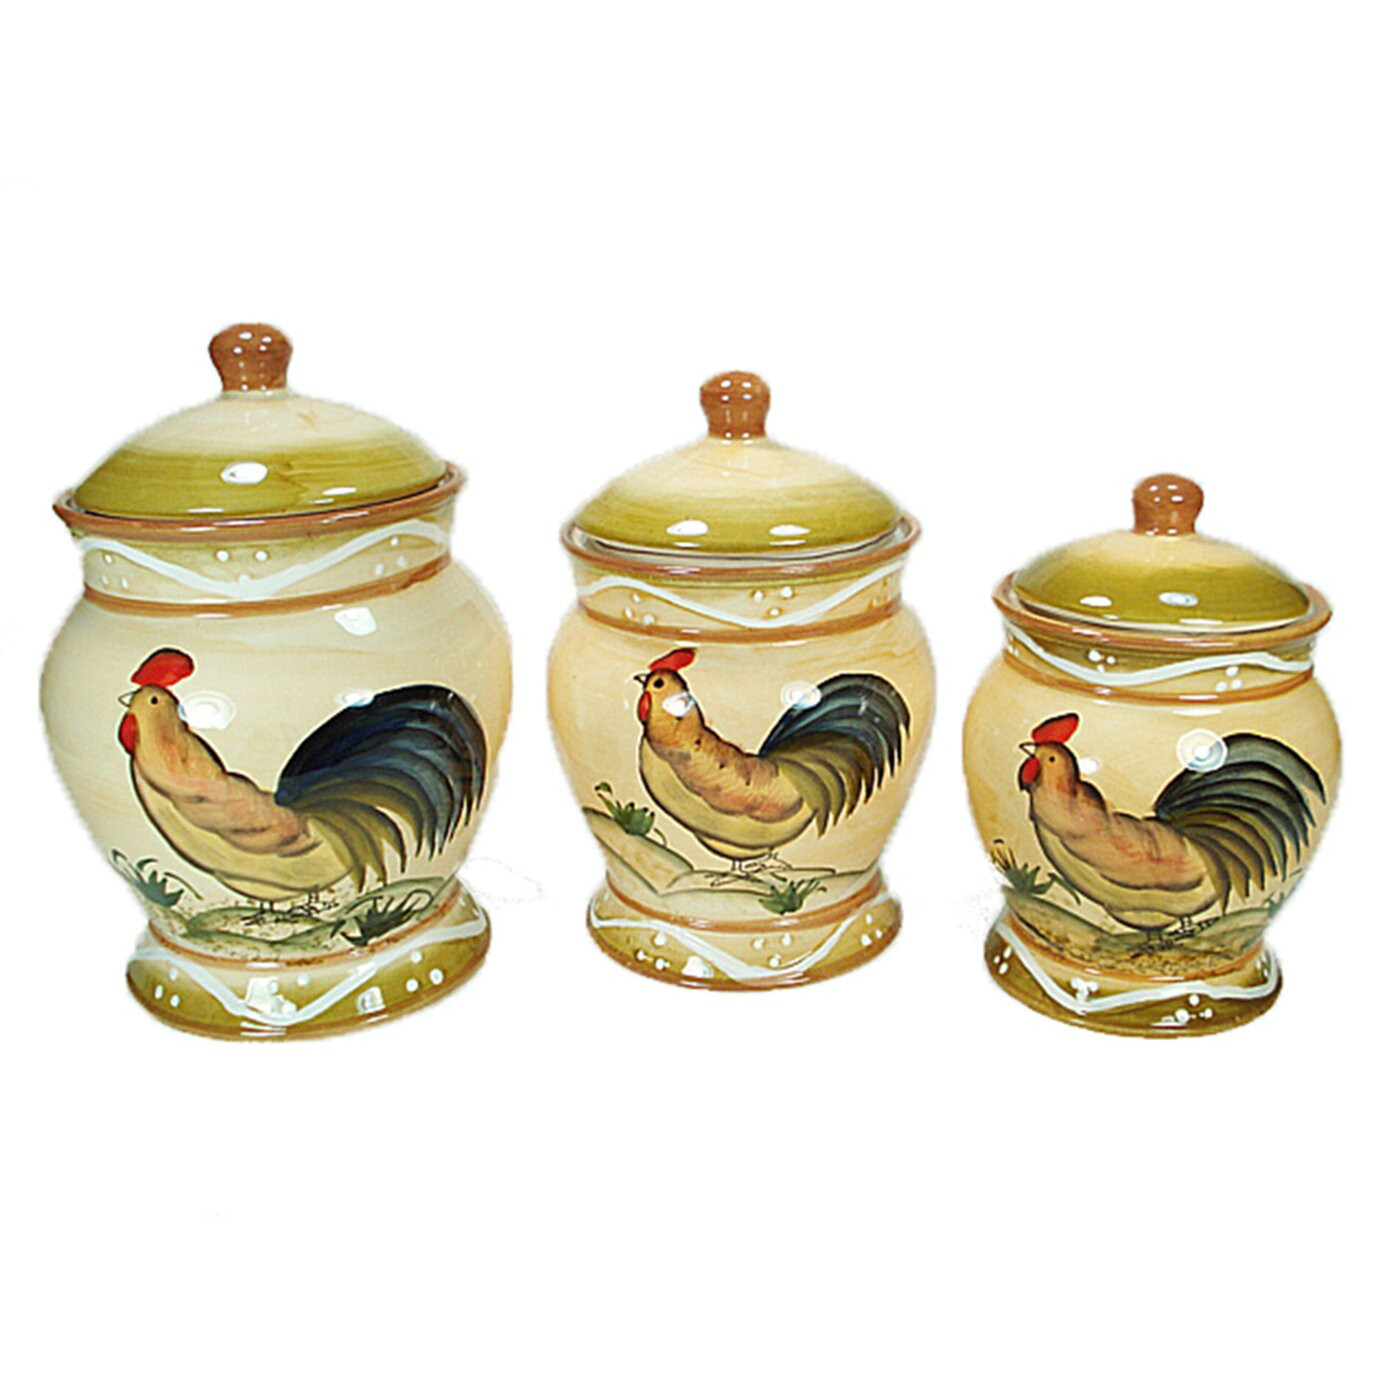 Kitchen Canisters Ceramic Sets: D'lusso Designs 3 Piece Ceramic Rooster Canister Set